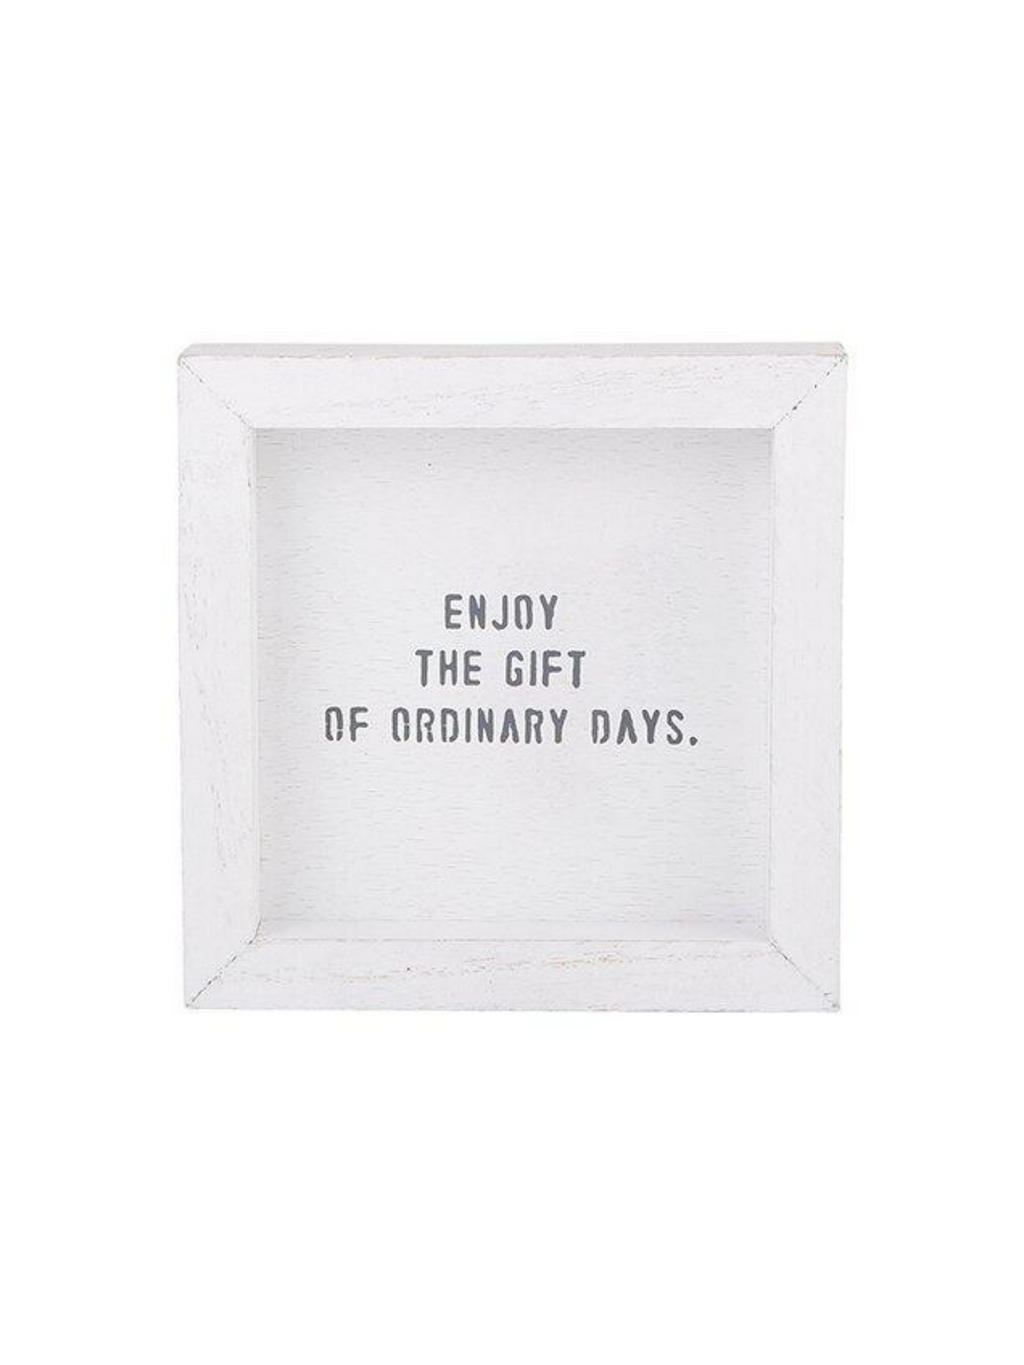 Enjoy the Gift - 6x6